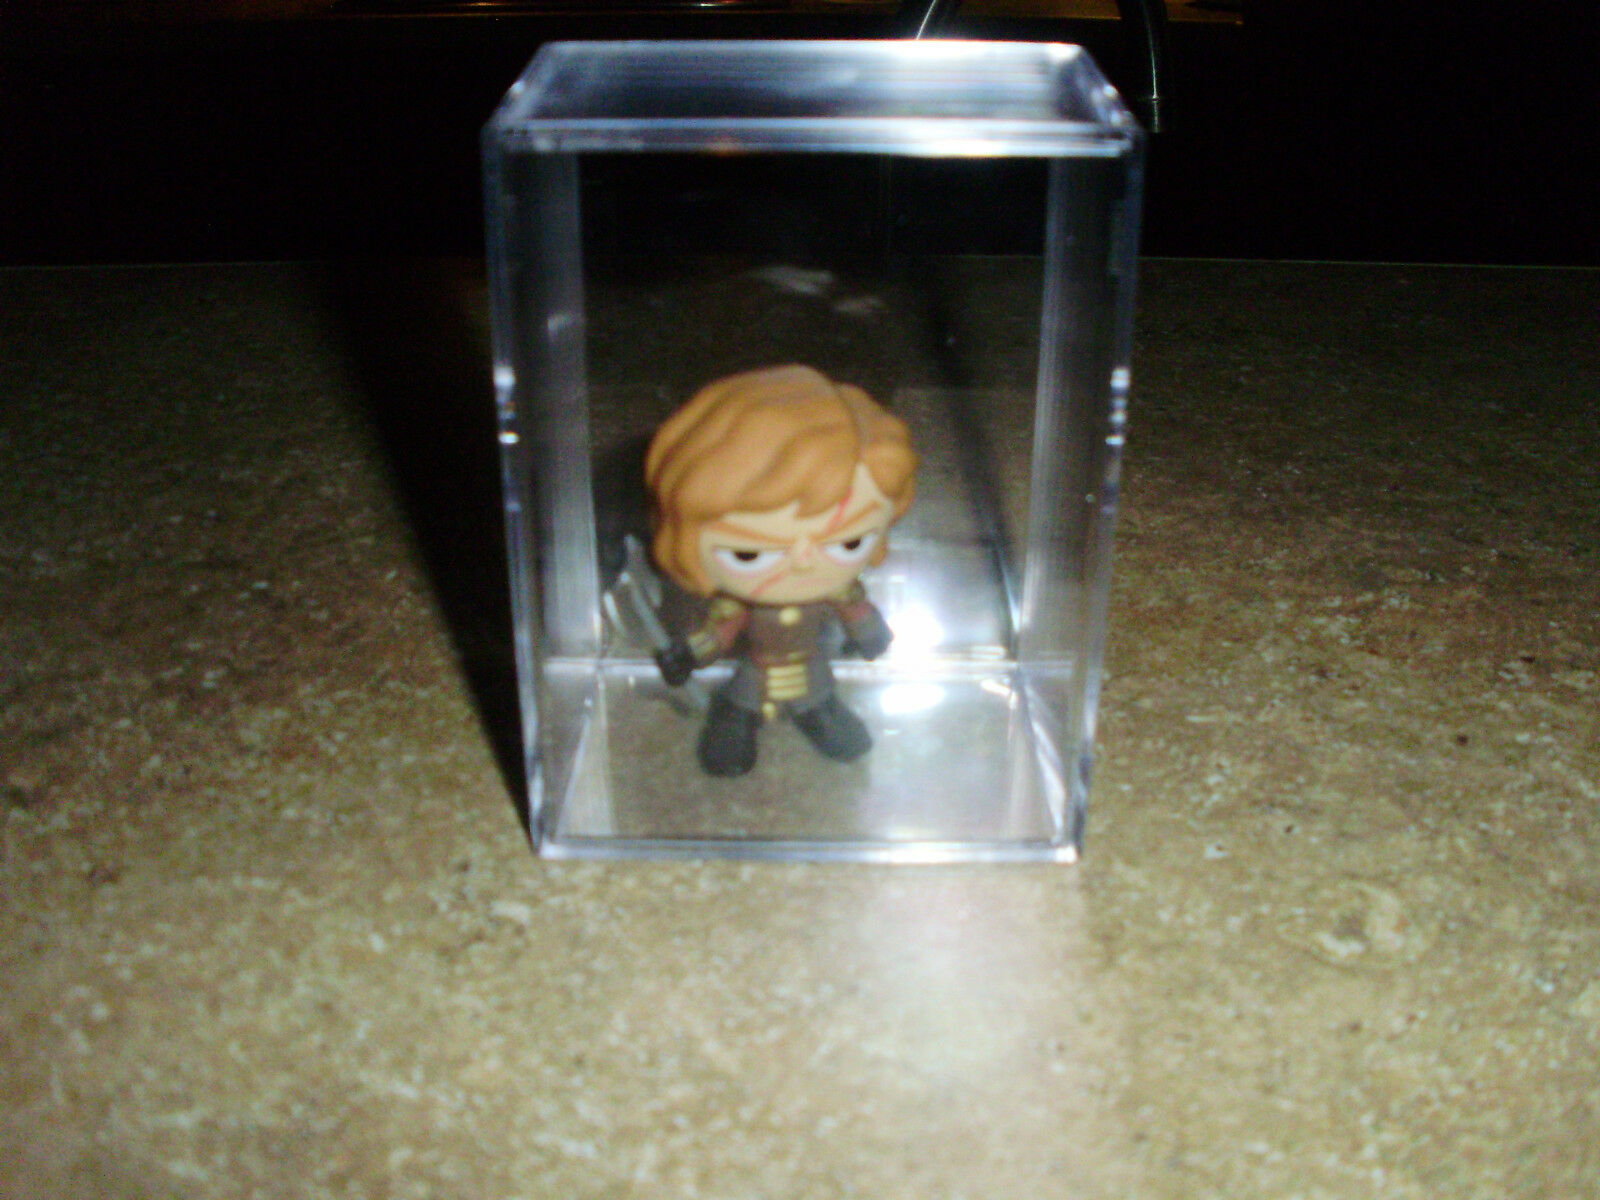 FUNKO GAME OF THRONES MYSTERY MINIS SERIES 1 TYRION W/ SCAR HOT TOPIC EXCLUSIVE